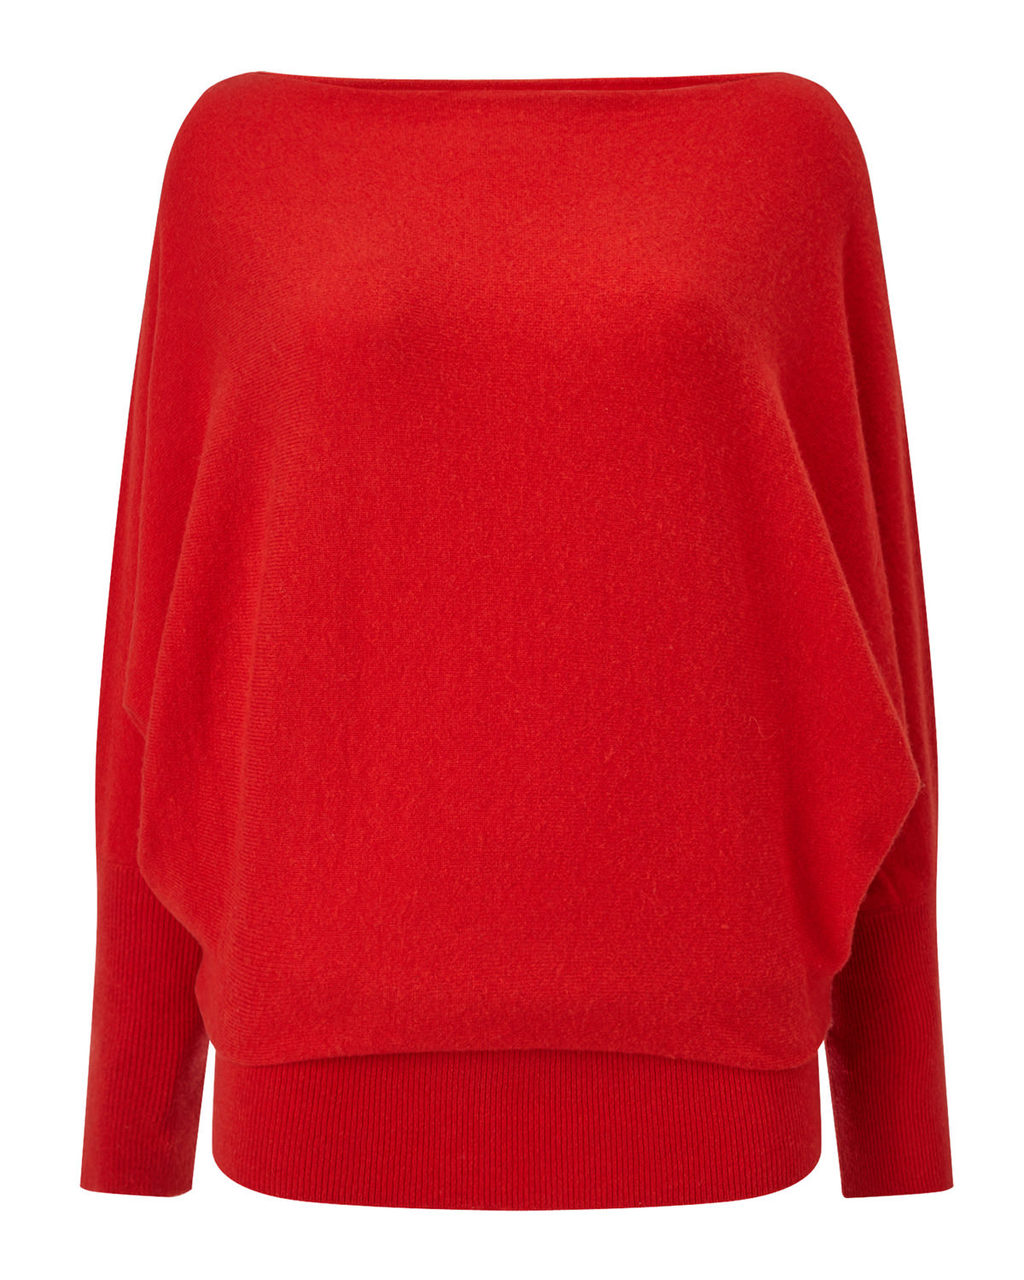 Britney Batwing Jumper - neckline: slash/boat neckline; sleeve style: dolman/batwing; pattern: plain; style: standard; predominant colour: true red; occasions: casual; length: standard; fibres: wool - mix; fit: loose; sleeve length: long sleeve; texture group: knits/crochet; pattern type: knitted - fine stitch; season: a/w 2015